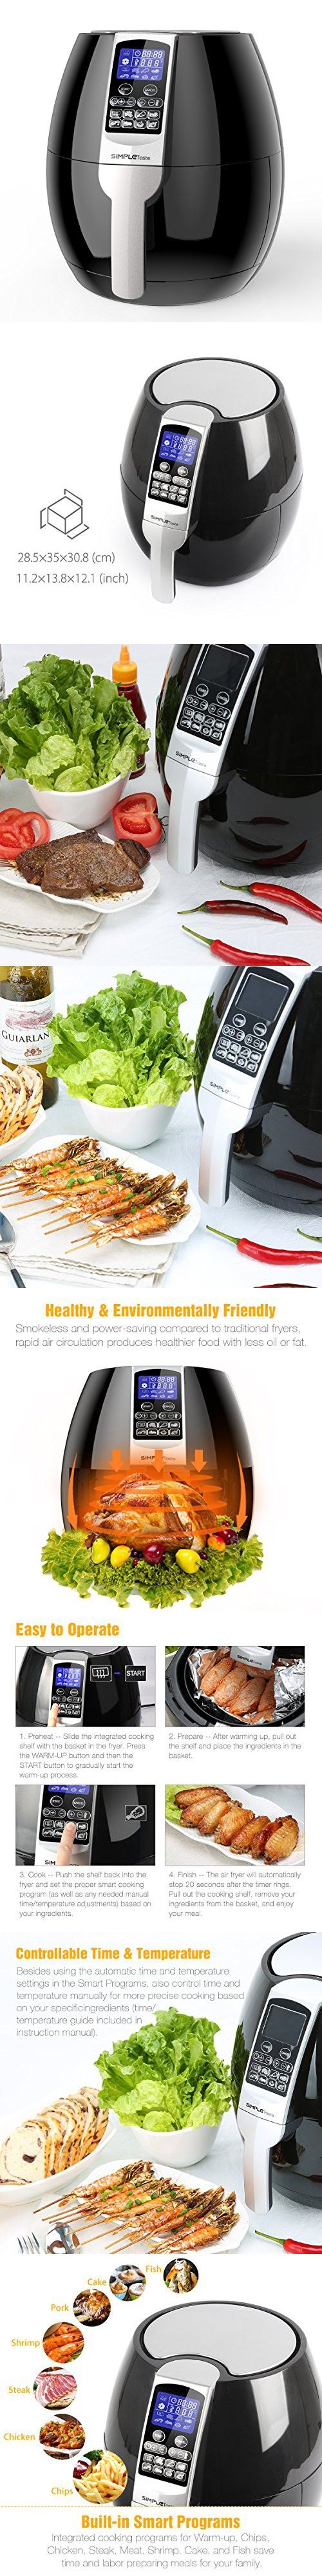 SimpleTaste 1400W Multi-function Electric Air Fryer with Rapid Air Circulation Technology, Smart Programs with Automatic and Manual Timer & Temperature Controls, 3.2 QT